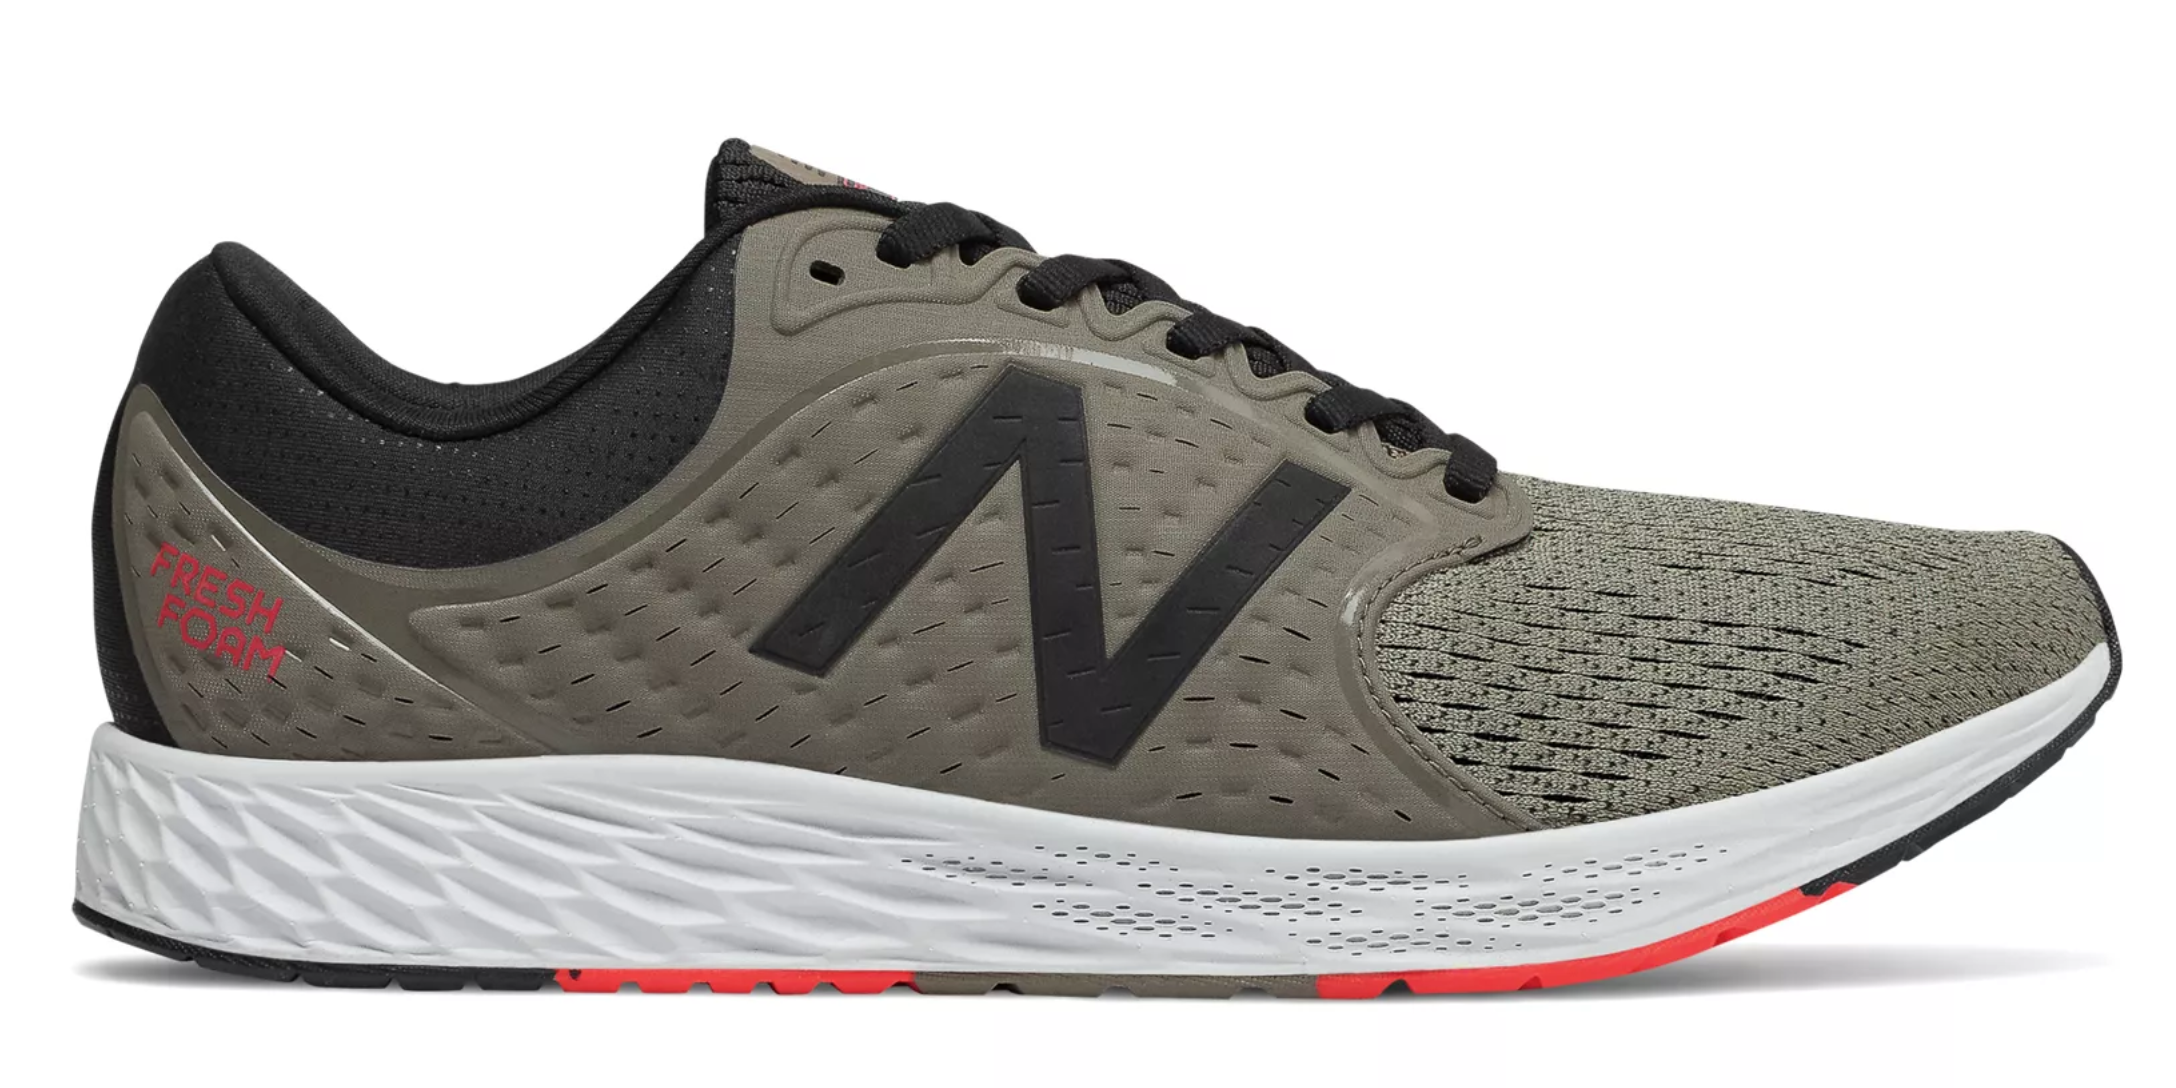 0b67a45efabc New Balance Running Shoes - 10 Best Running Shoes from New Balance